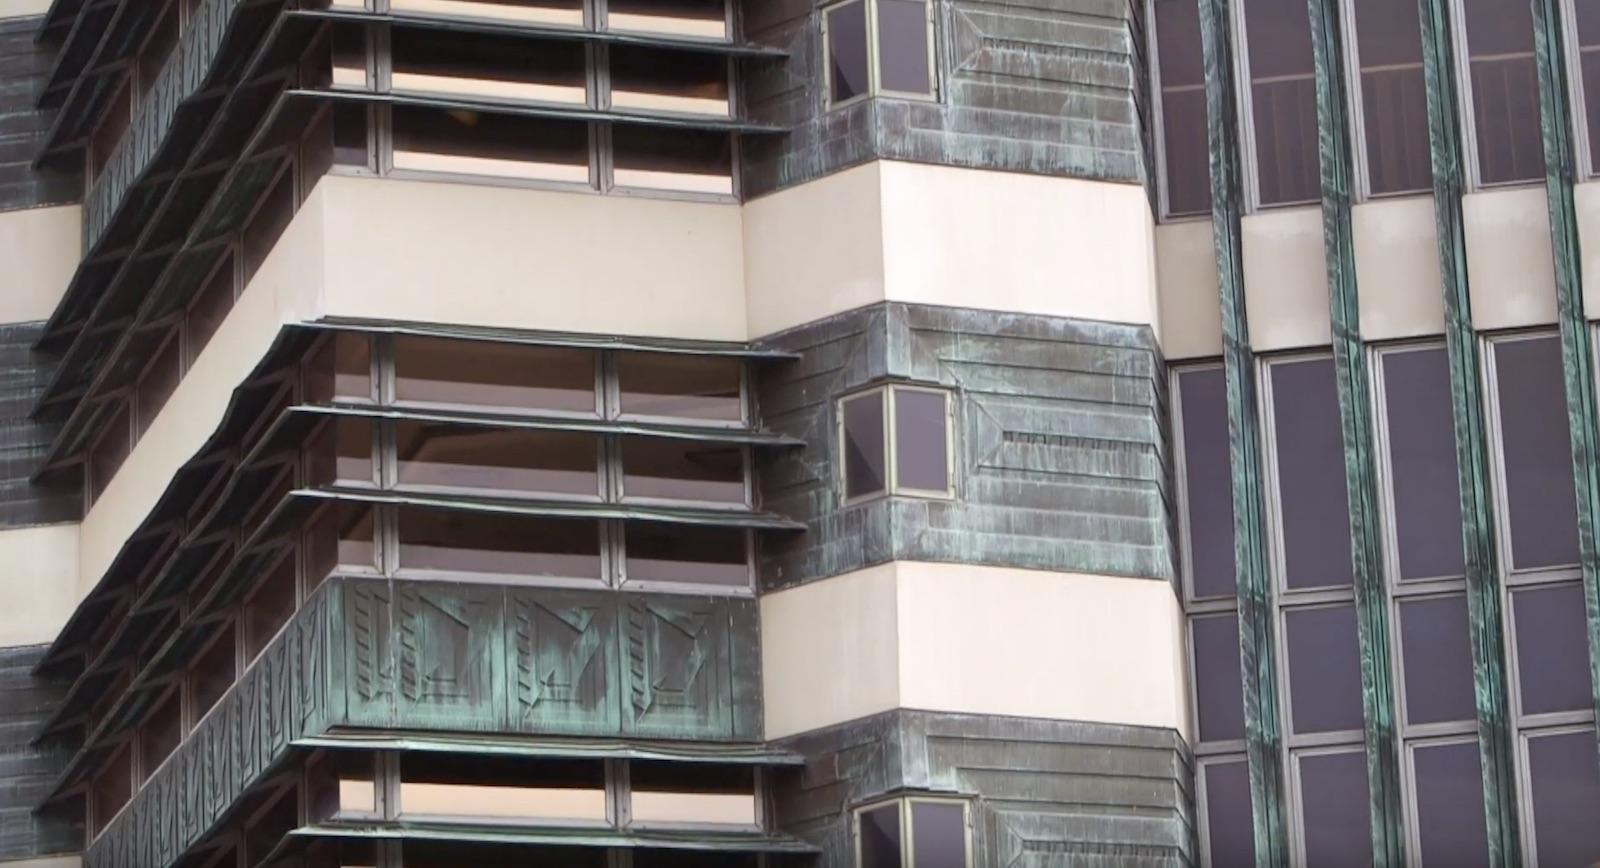 detail of the skyscraper's windows